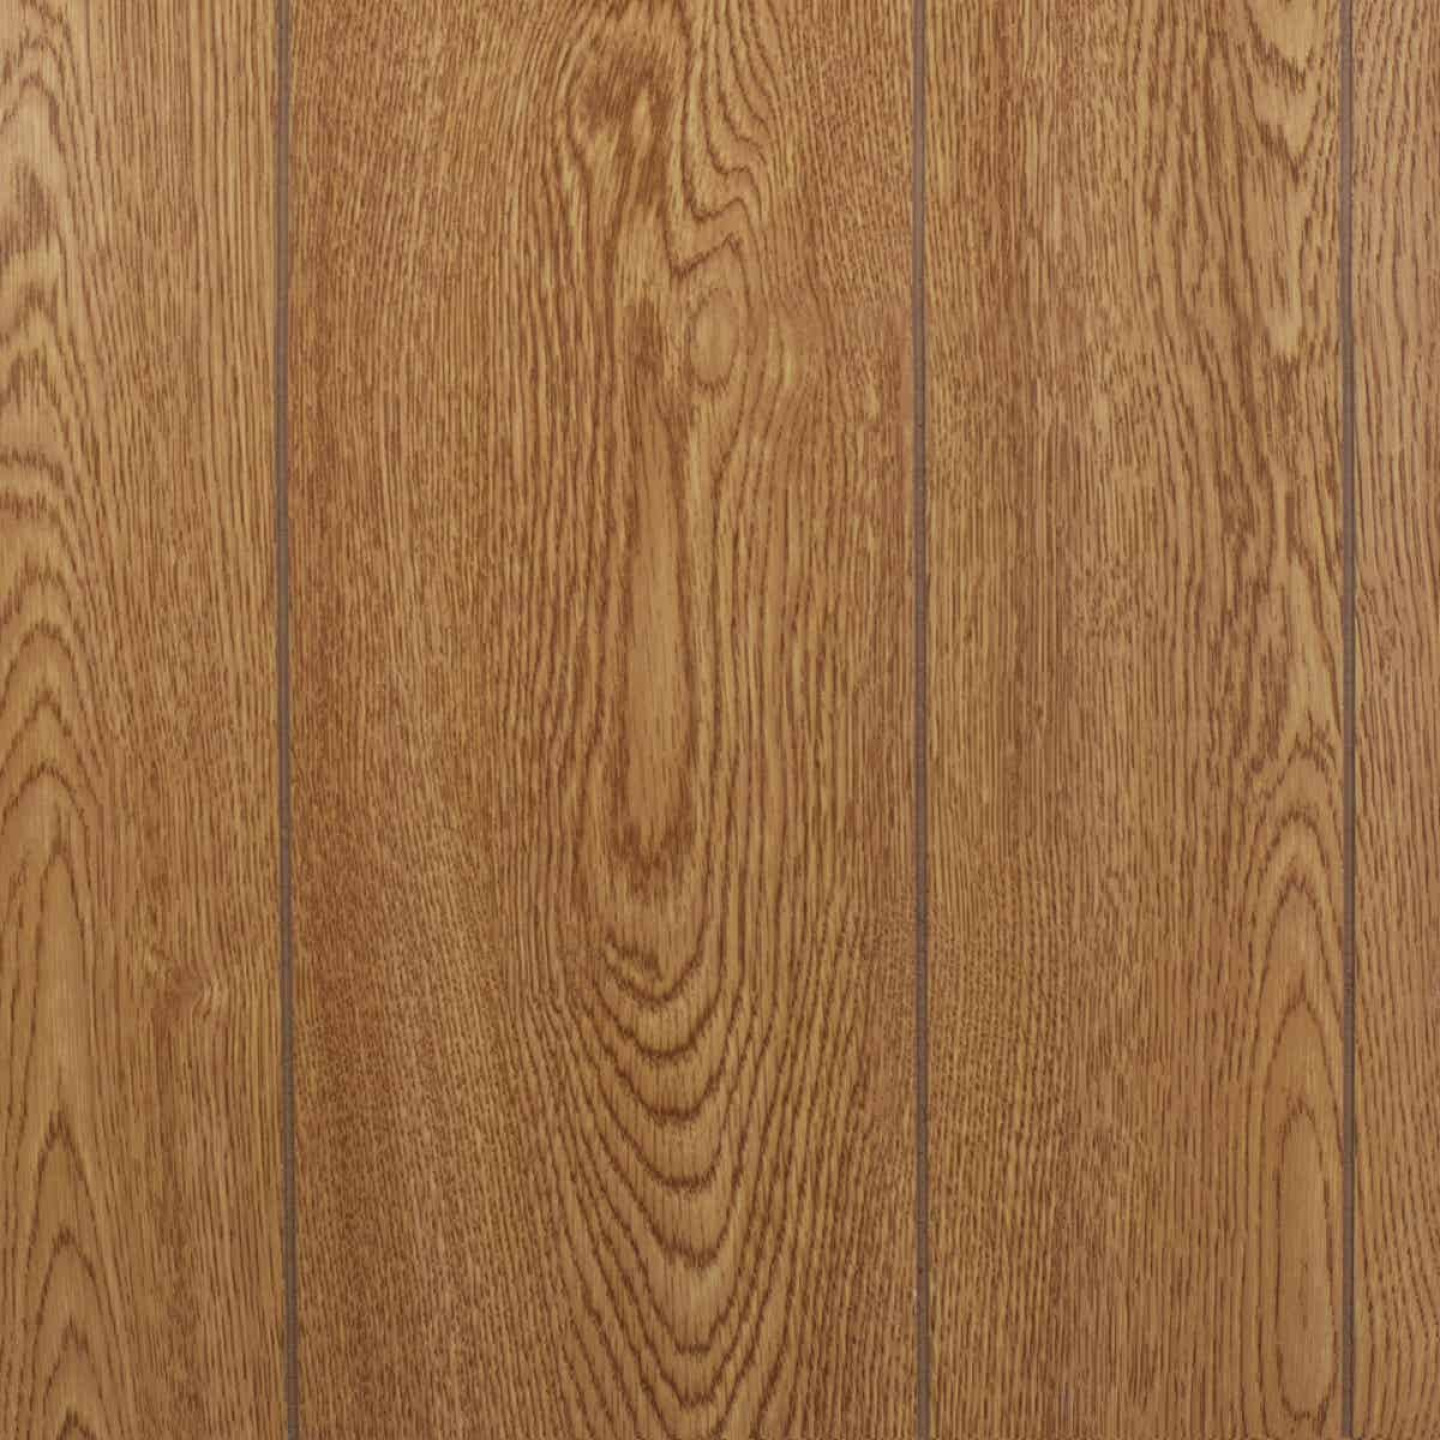 Global Product Sourcing 4 Ft. x 8 Ft. x 1/8 In. Honey Oak Random Groove Profile Wall Paneling Image 1